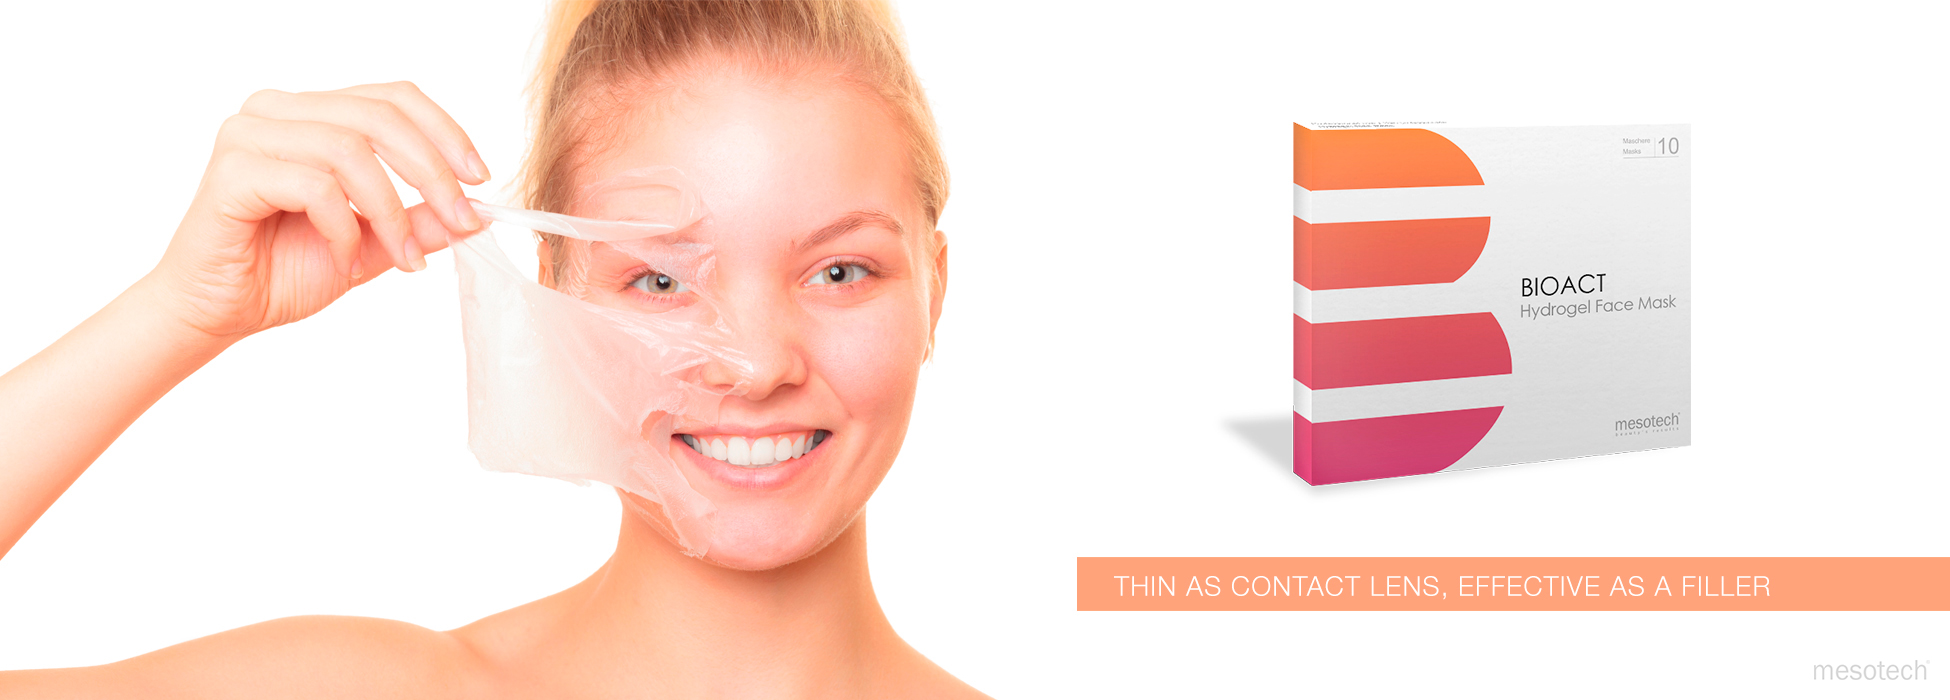 Bioact Face Mask - by Mesotech